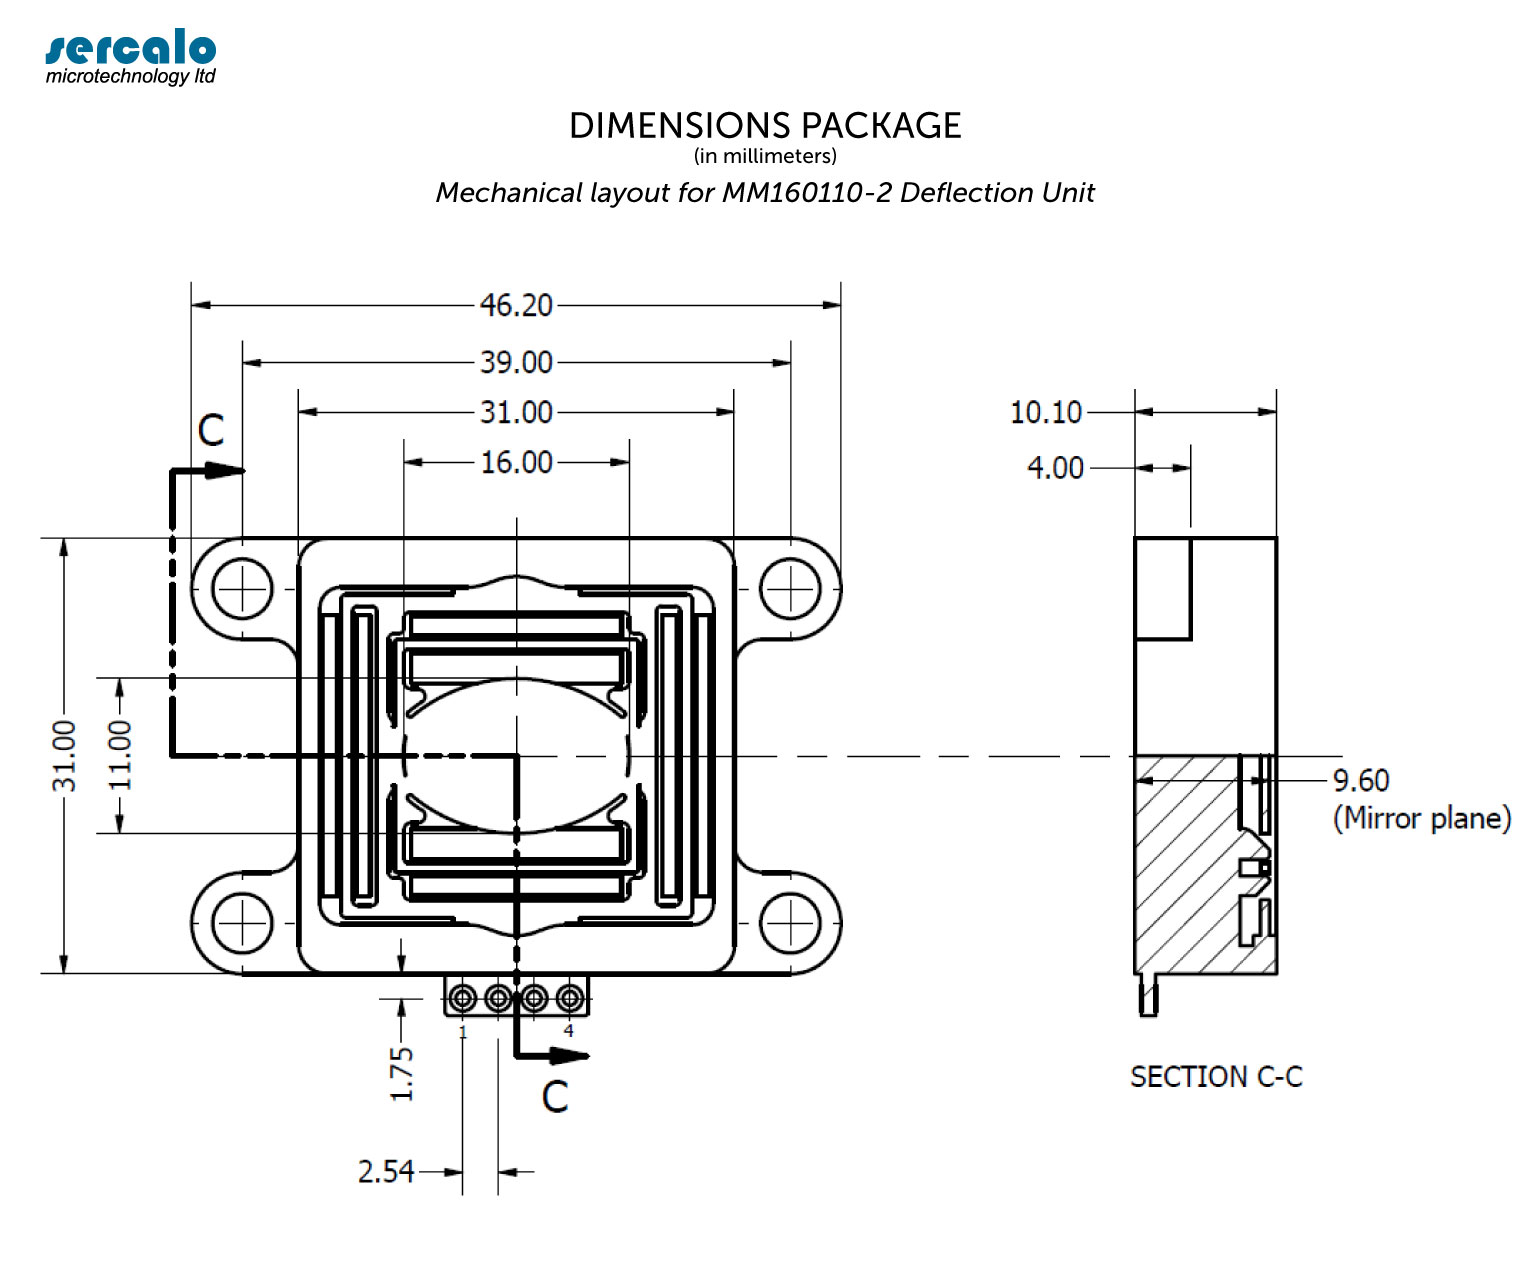 Package Dimensions - DUAL AXIS DEFLECTION UNIT MM160110-2